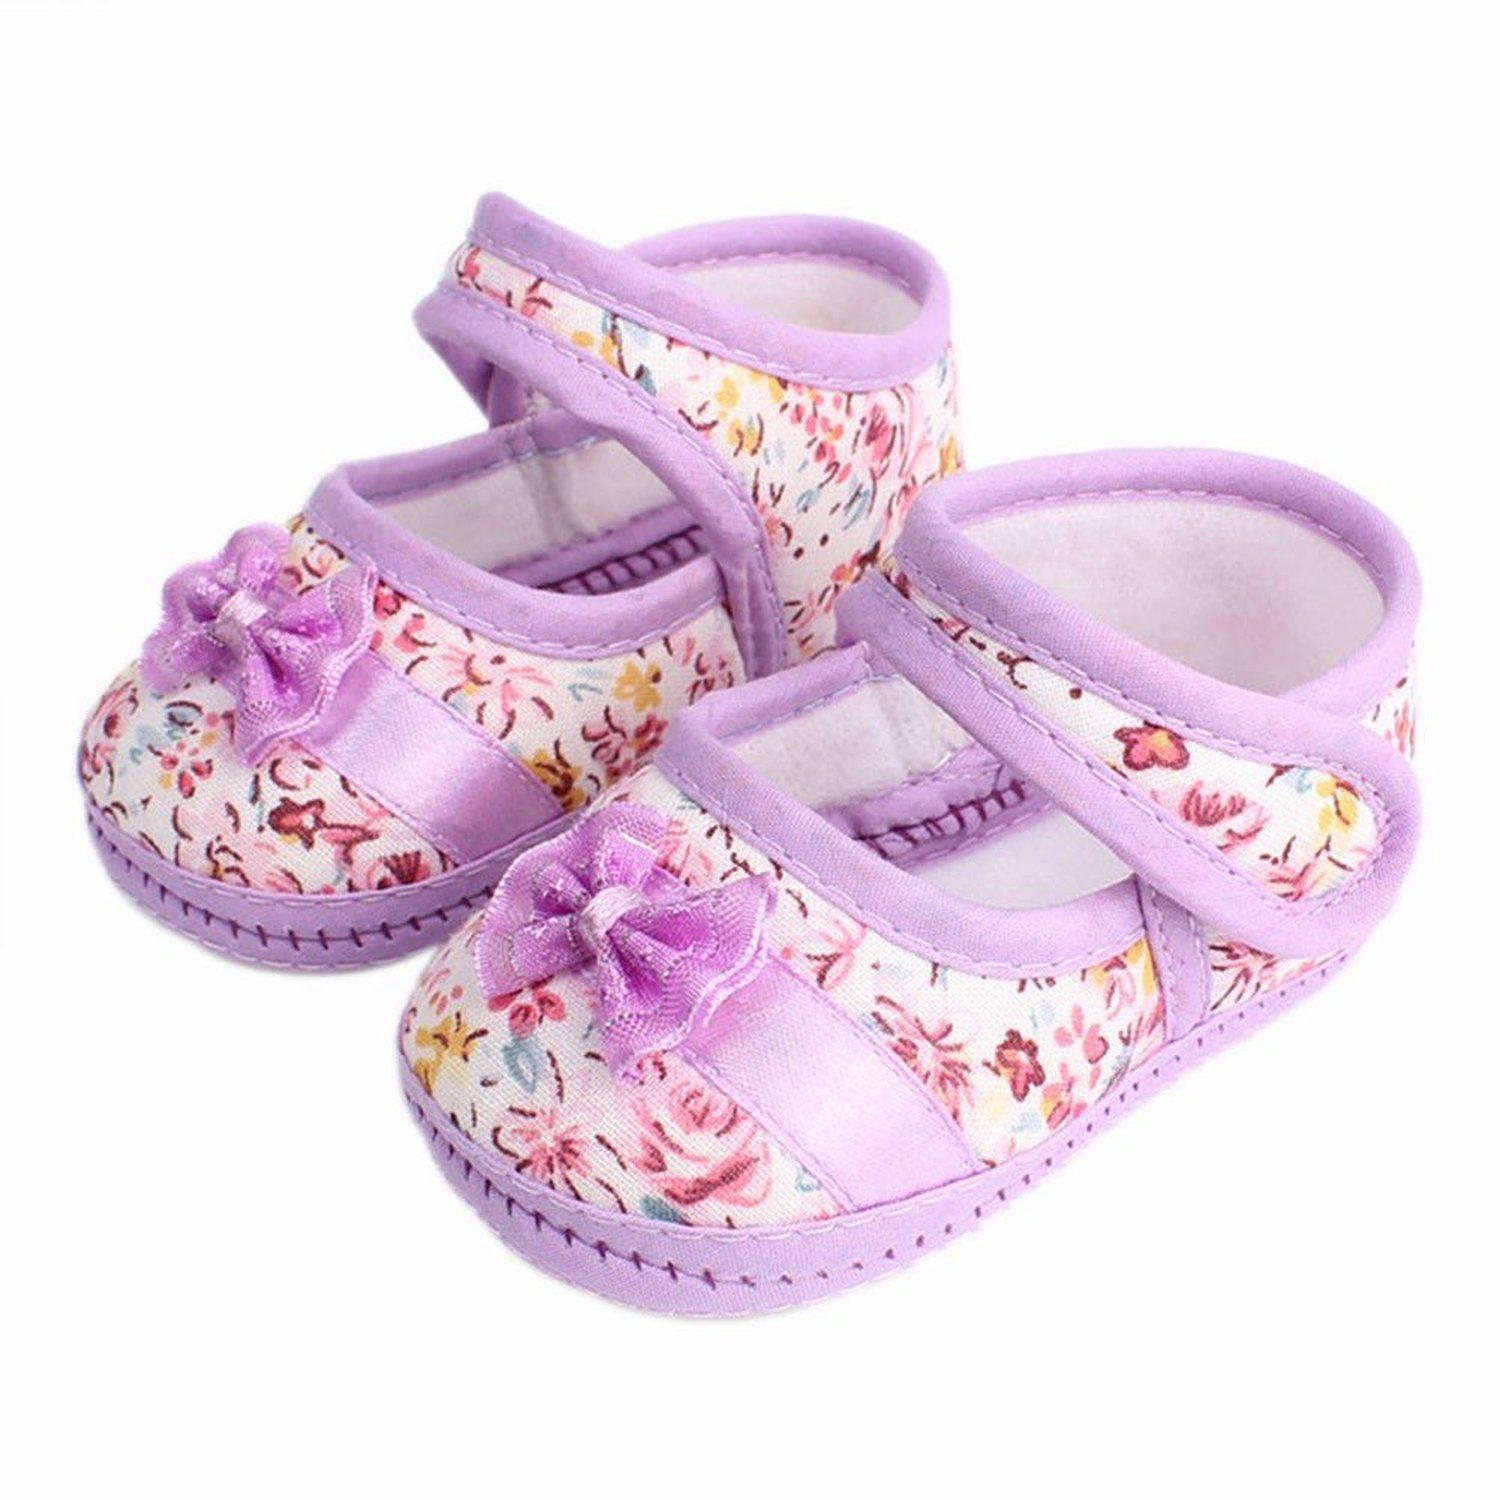 Baby Girl Shoes on Amazon for Just $3 44 Shipped